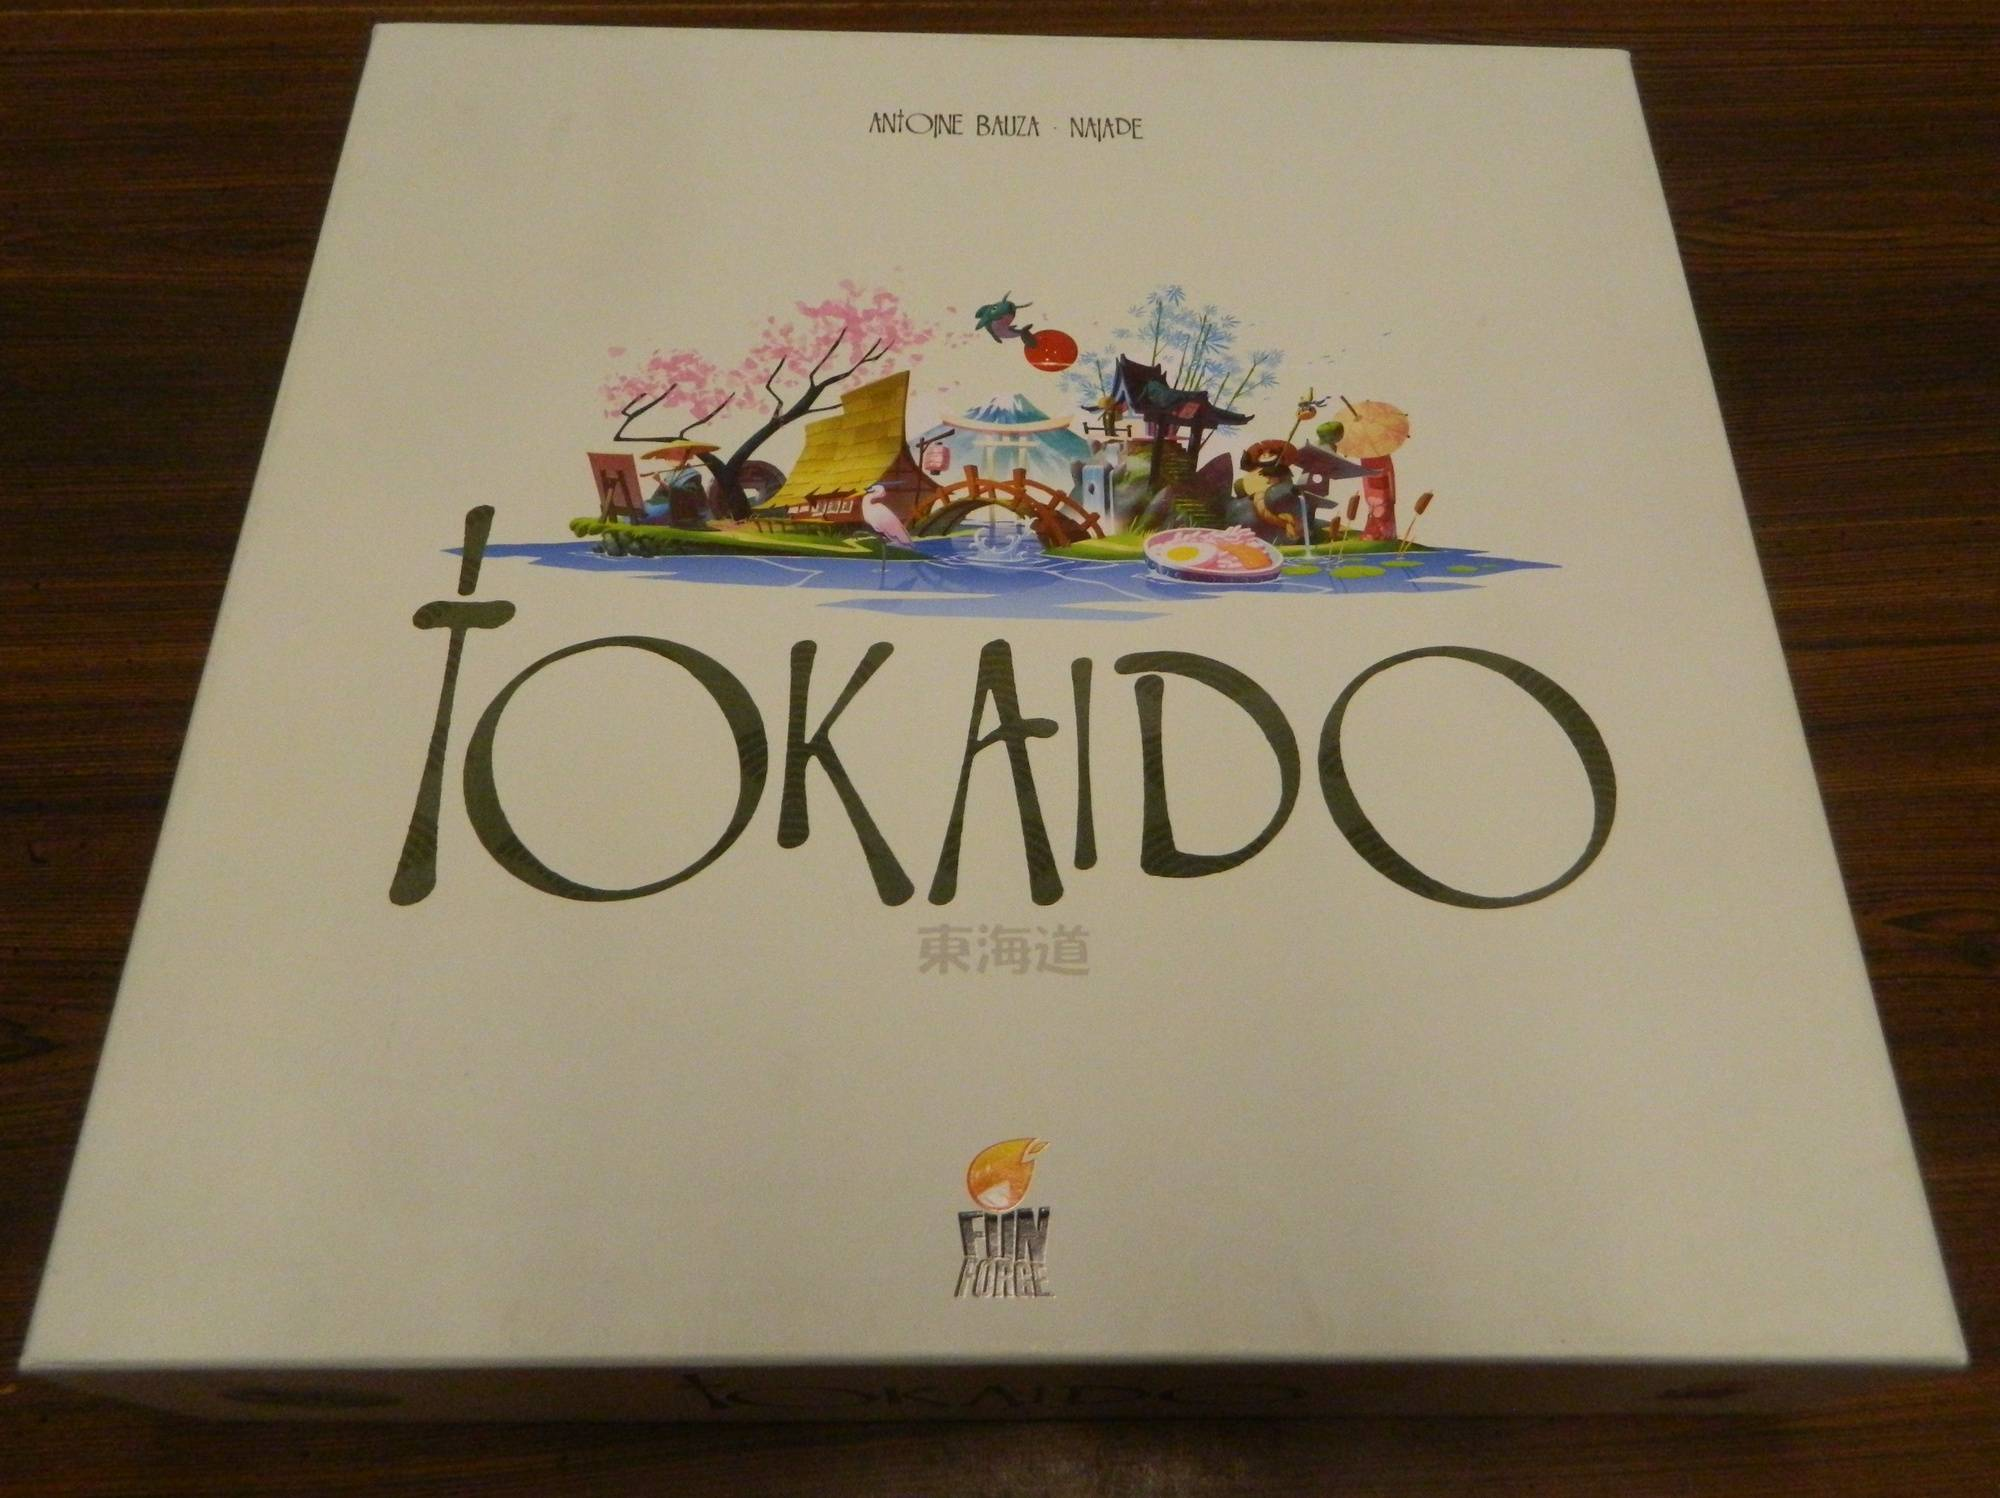 Tokaido Board Game Review and Rules | Geeky Hobbies image